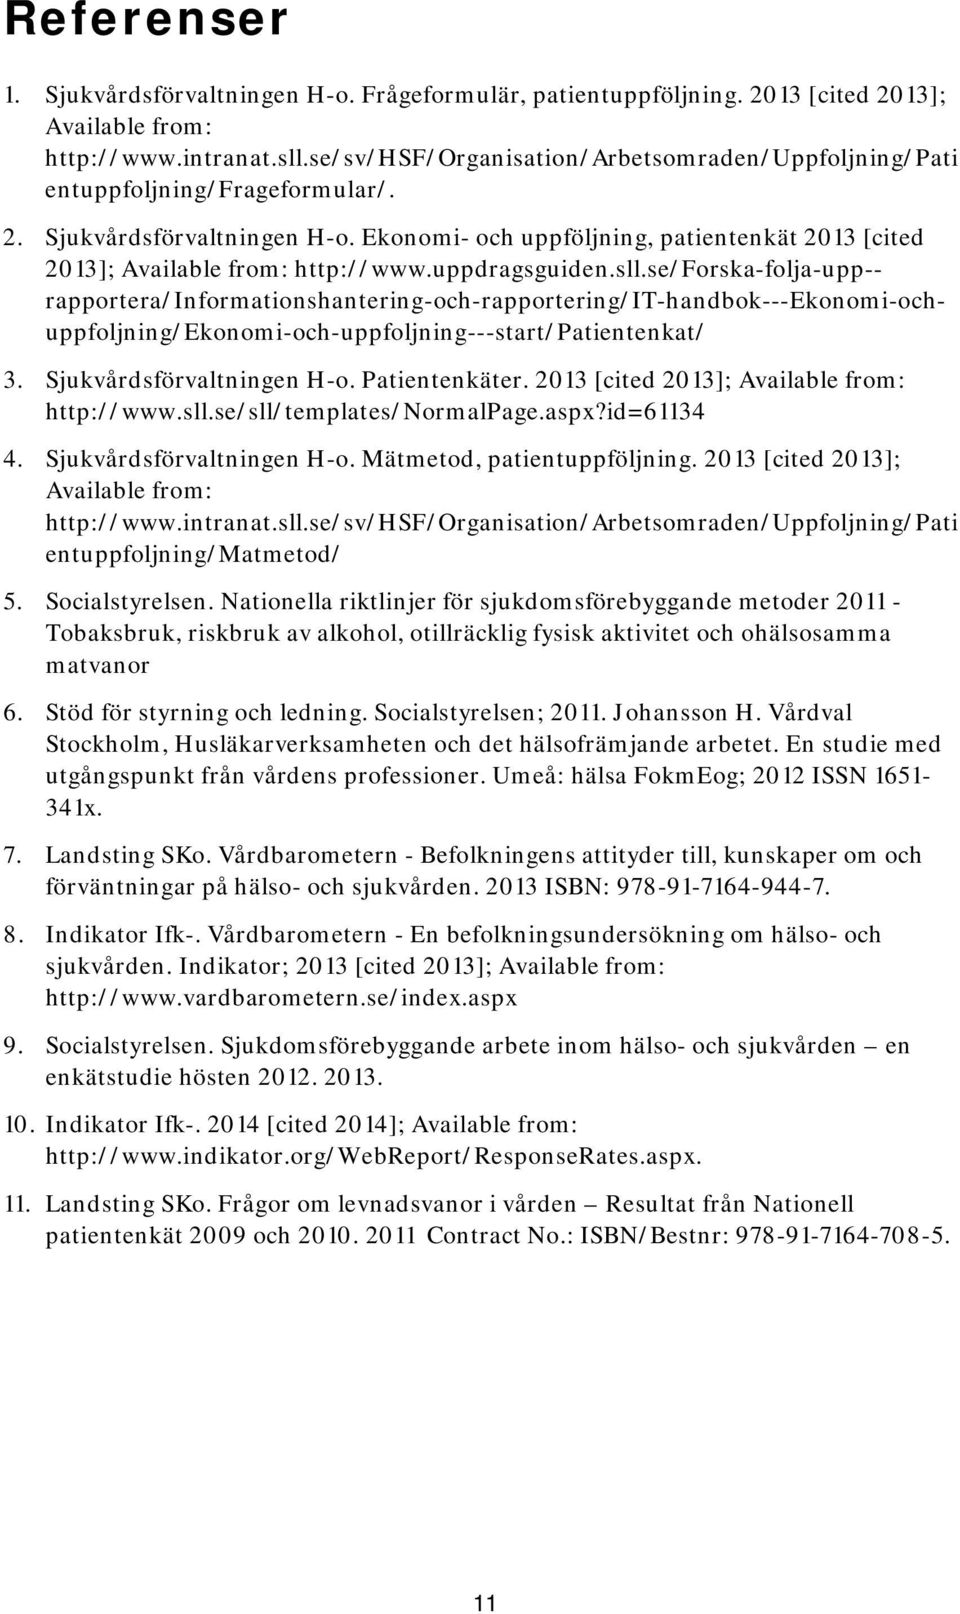 Ekonomi- och uppföljning, patientenkät 2013 [cited 2013]; Available from: http://www.uppdragsguiden.sll.